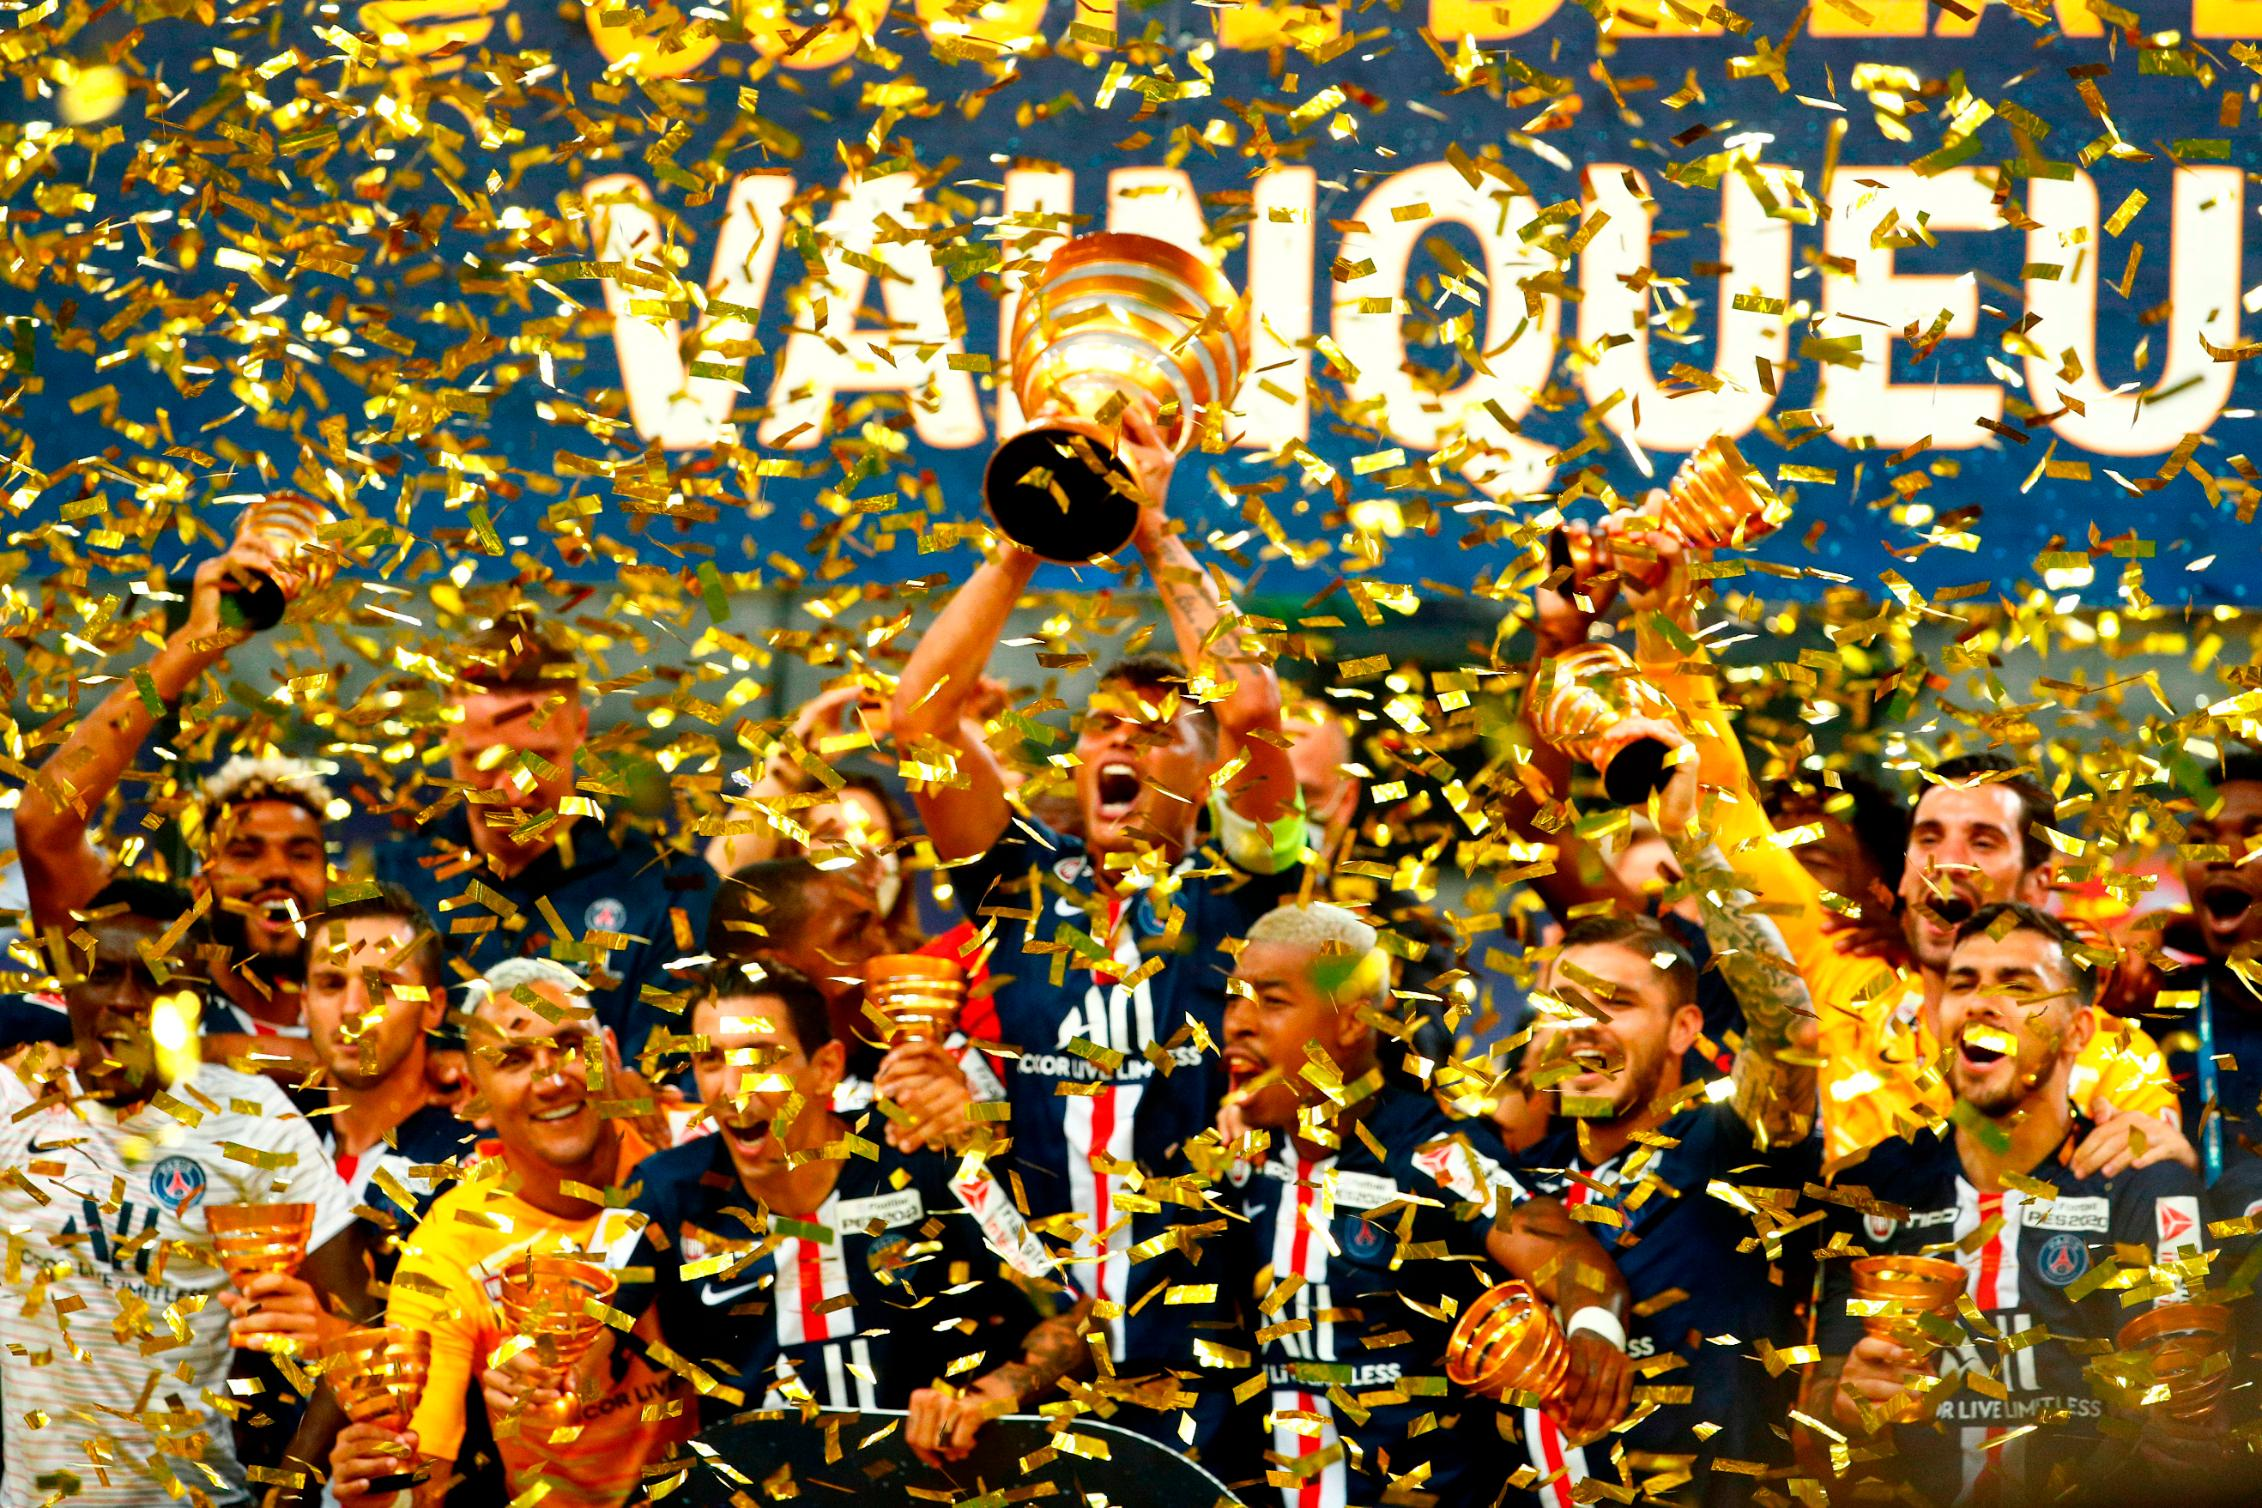 PSG completes domestic treble after French League Cup final victory against Lyon